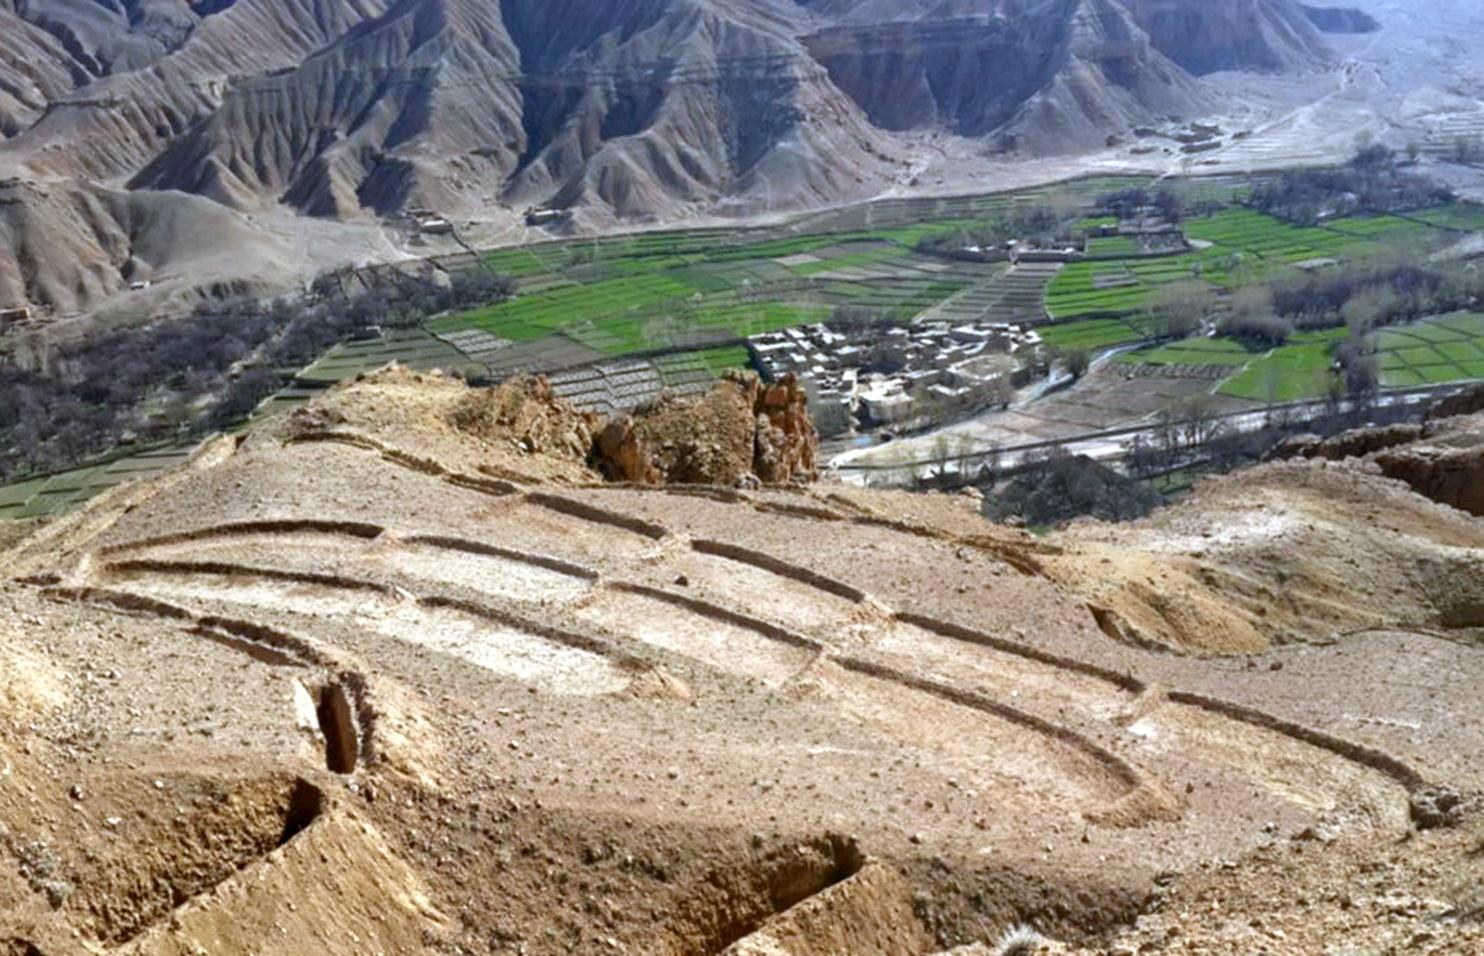 Overview of constructed terraces in the watershed, Saighan district, Bamyan